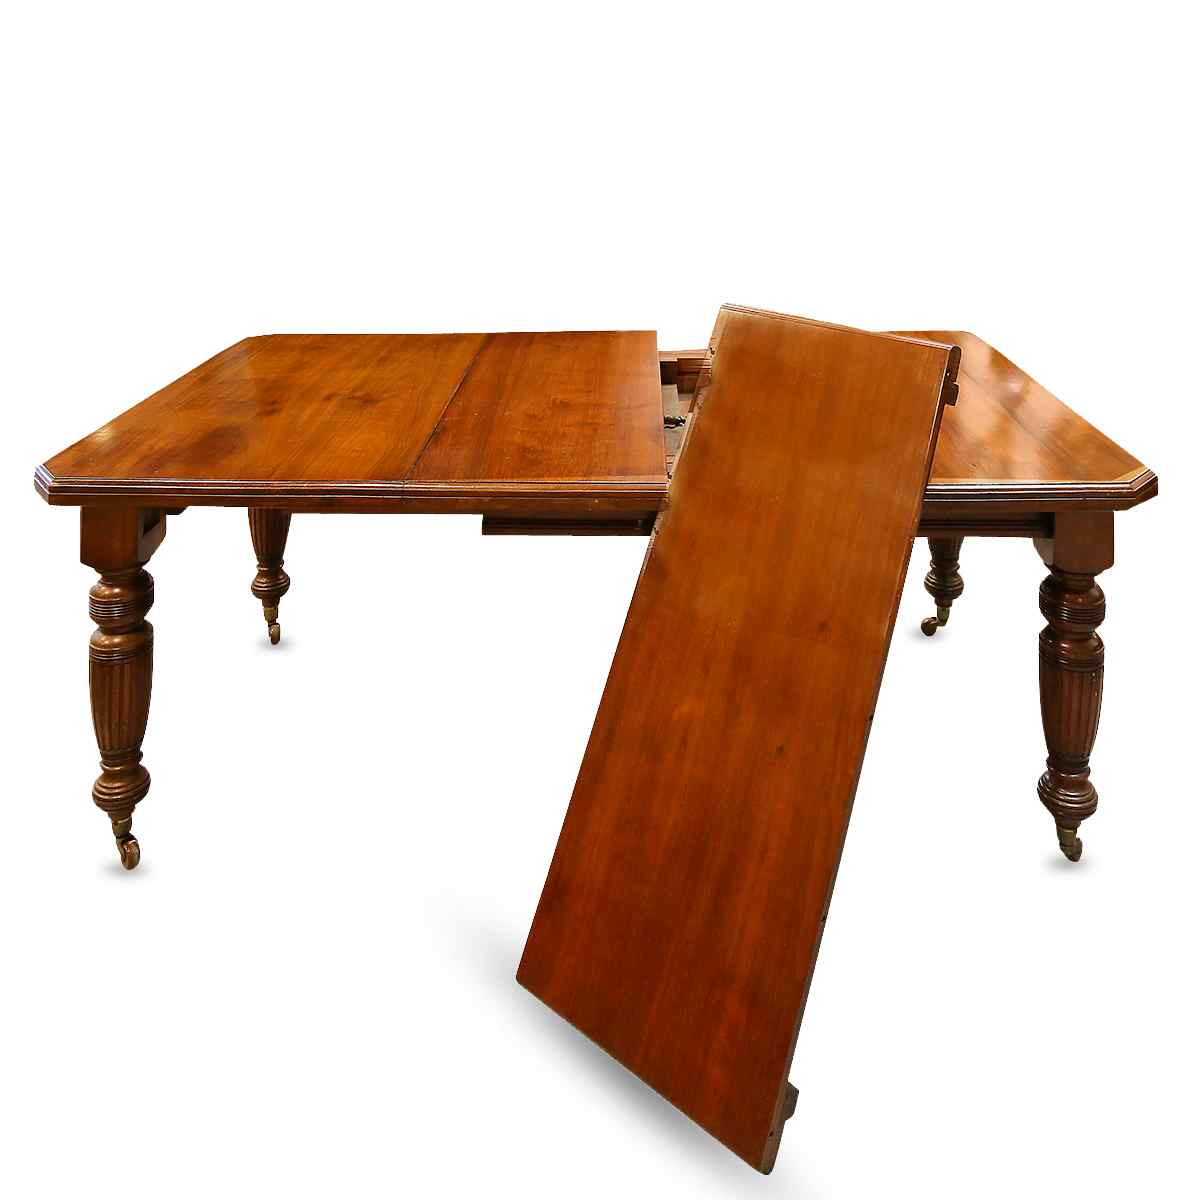 An English Table with Wind Out Mechanism 19th century